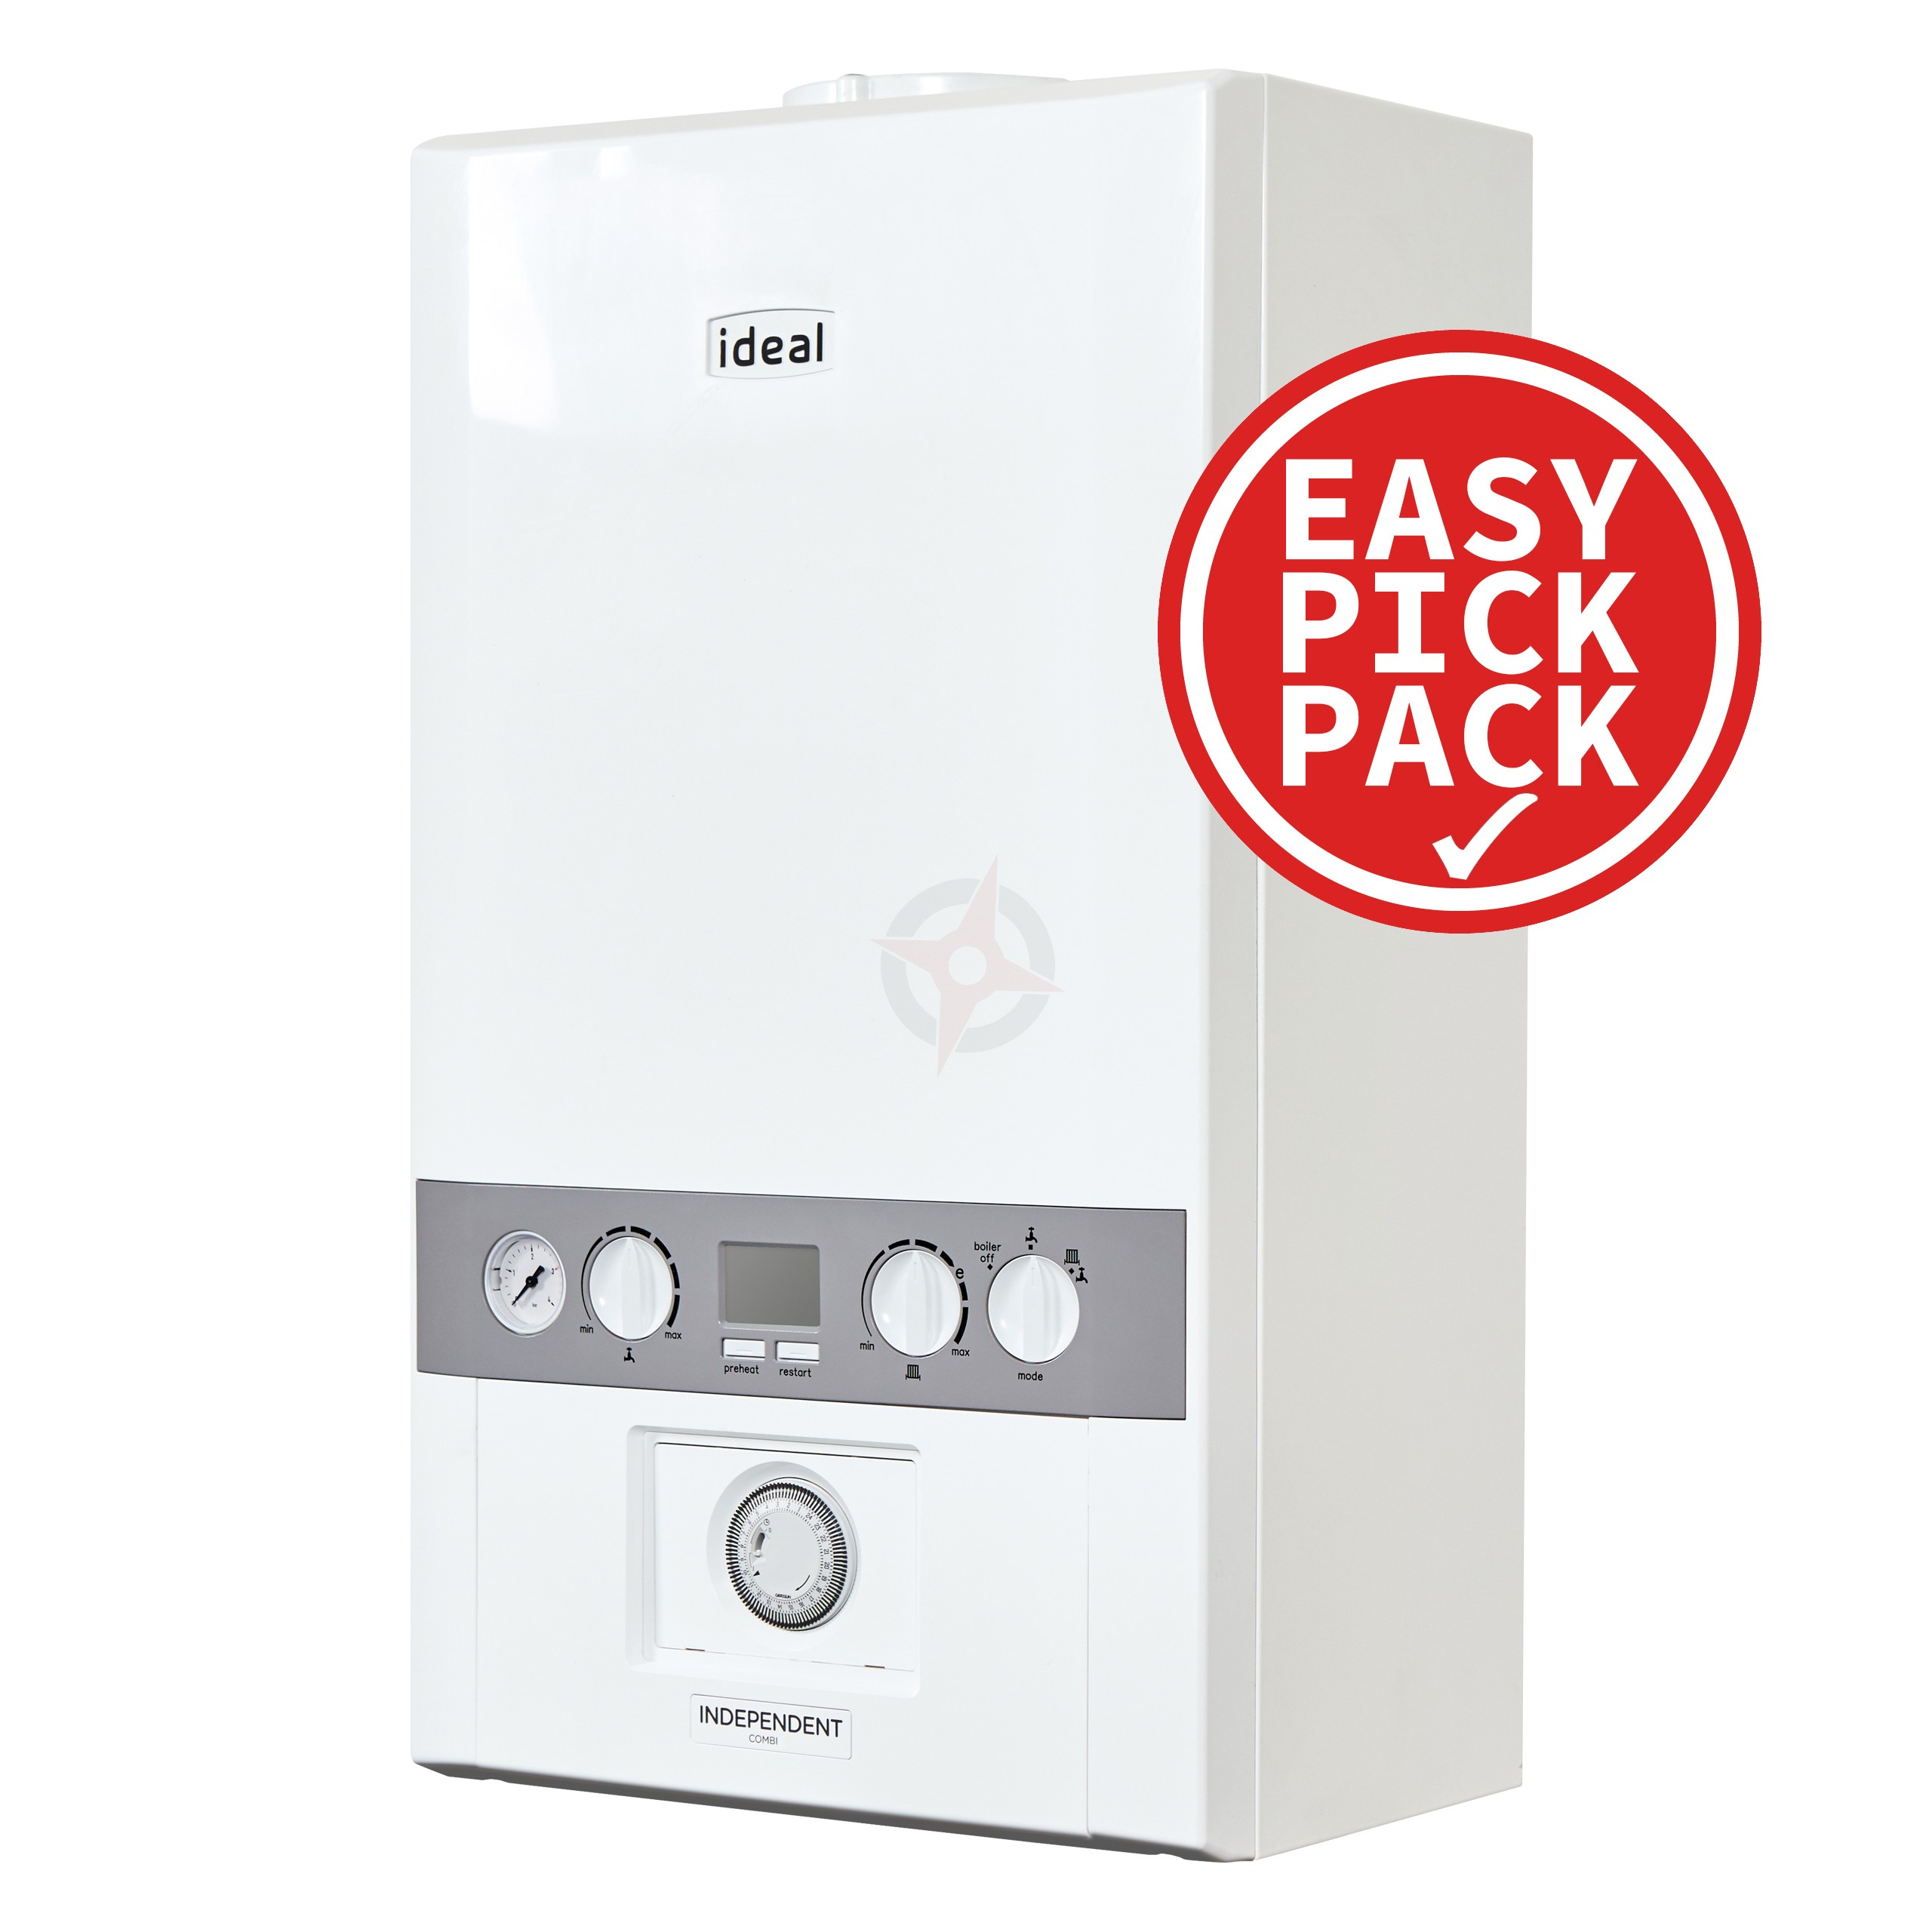 Ideal Independent C35 (ErP) Combi Boiler Easy Pick Pack